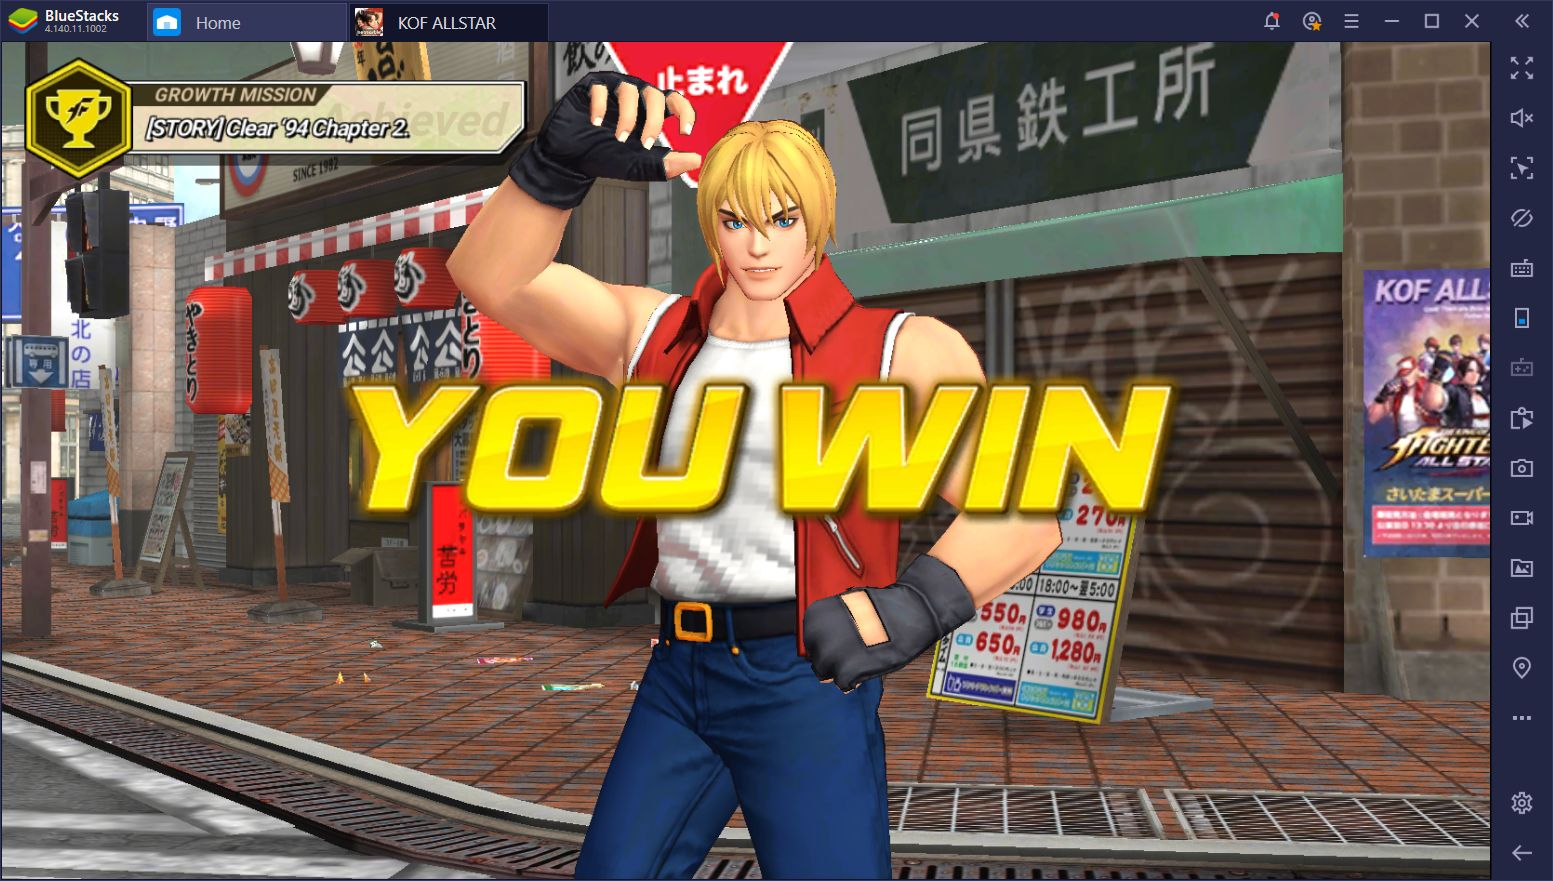 King of Fighters ALLSTAR on PC: Beat Up The Competition With These Tips and Tricks